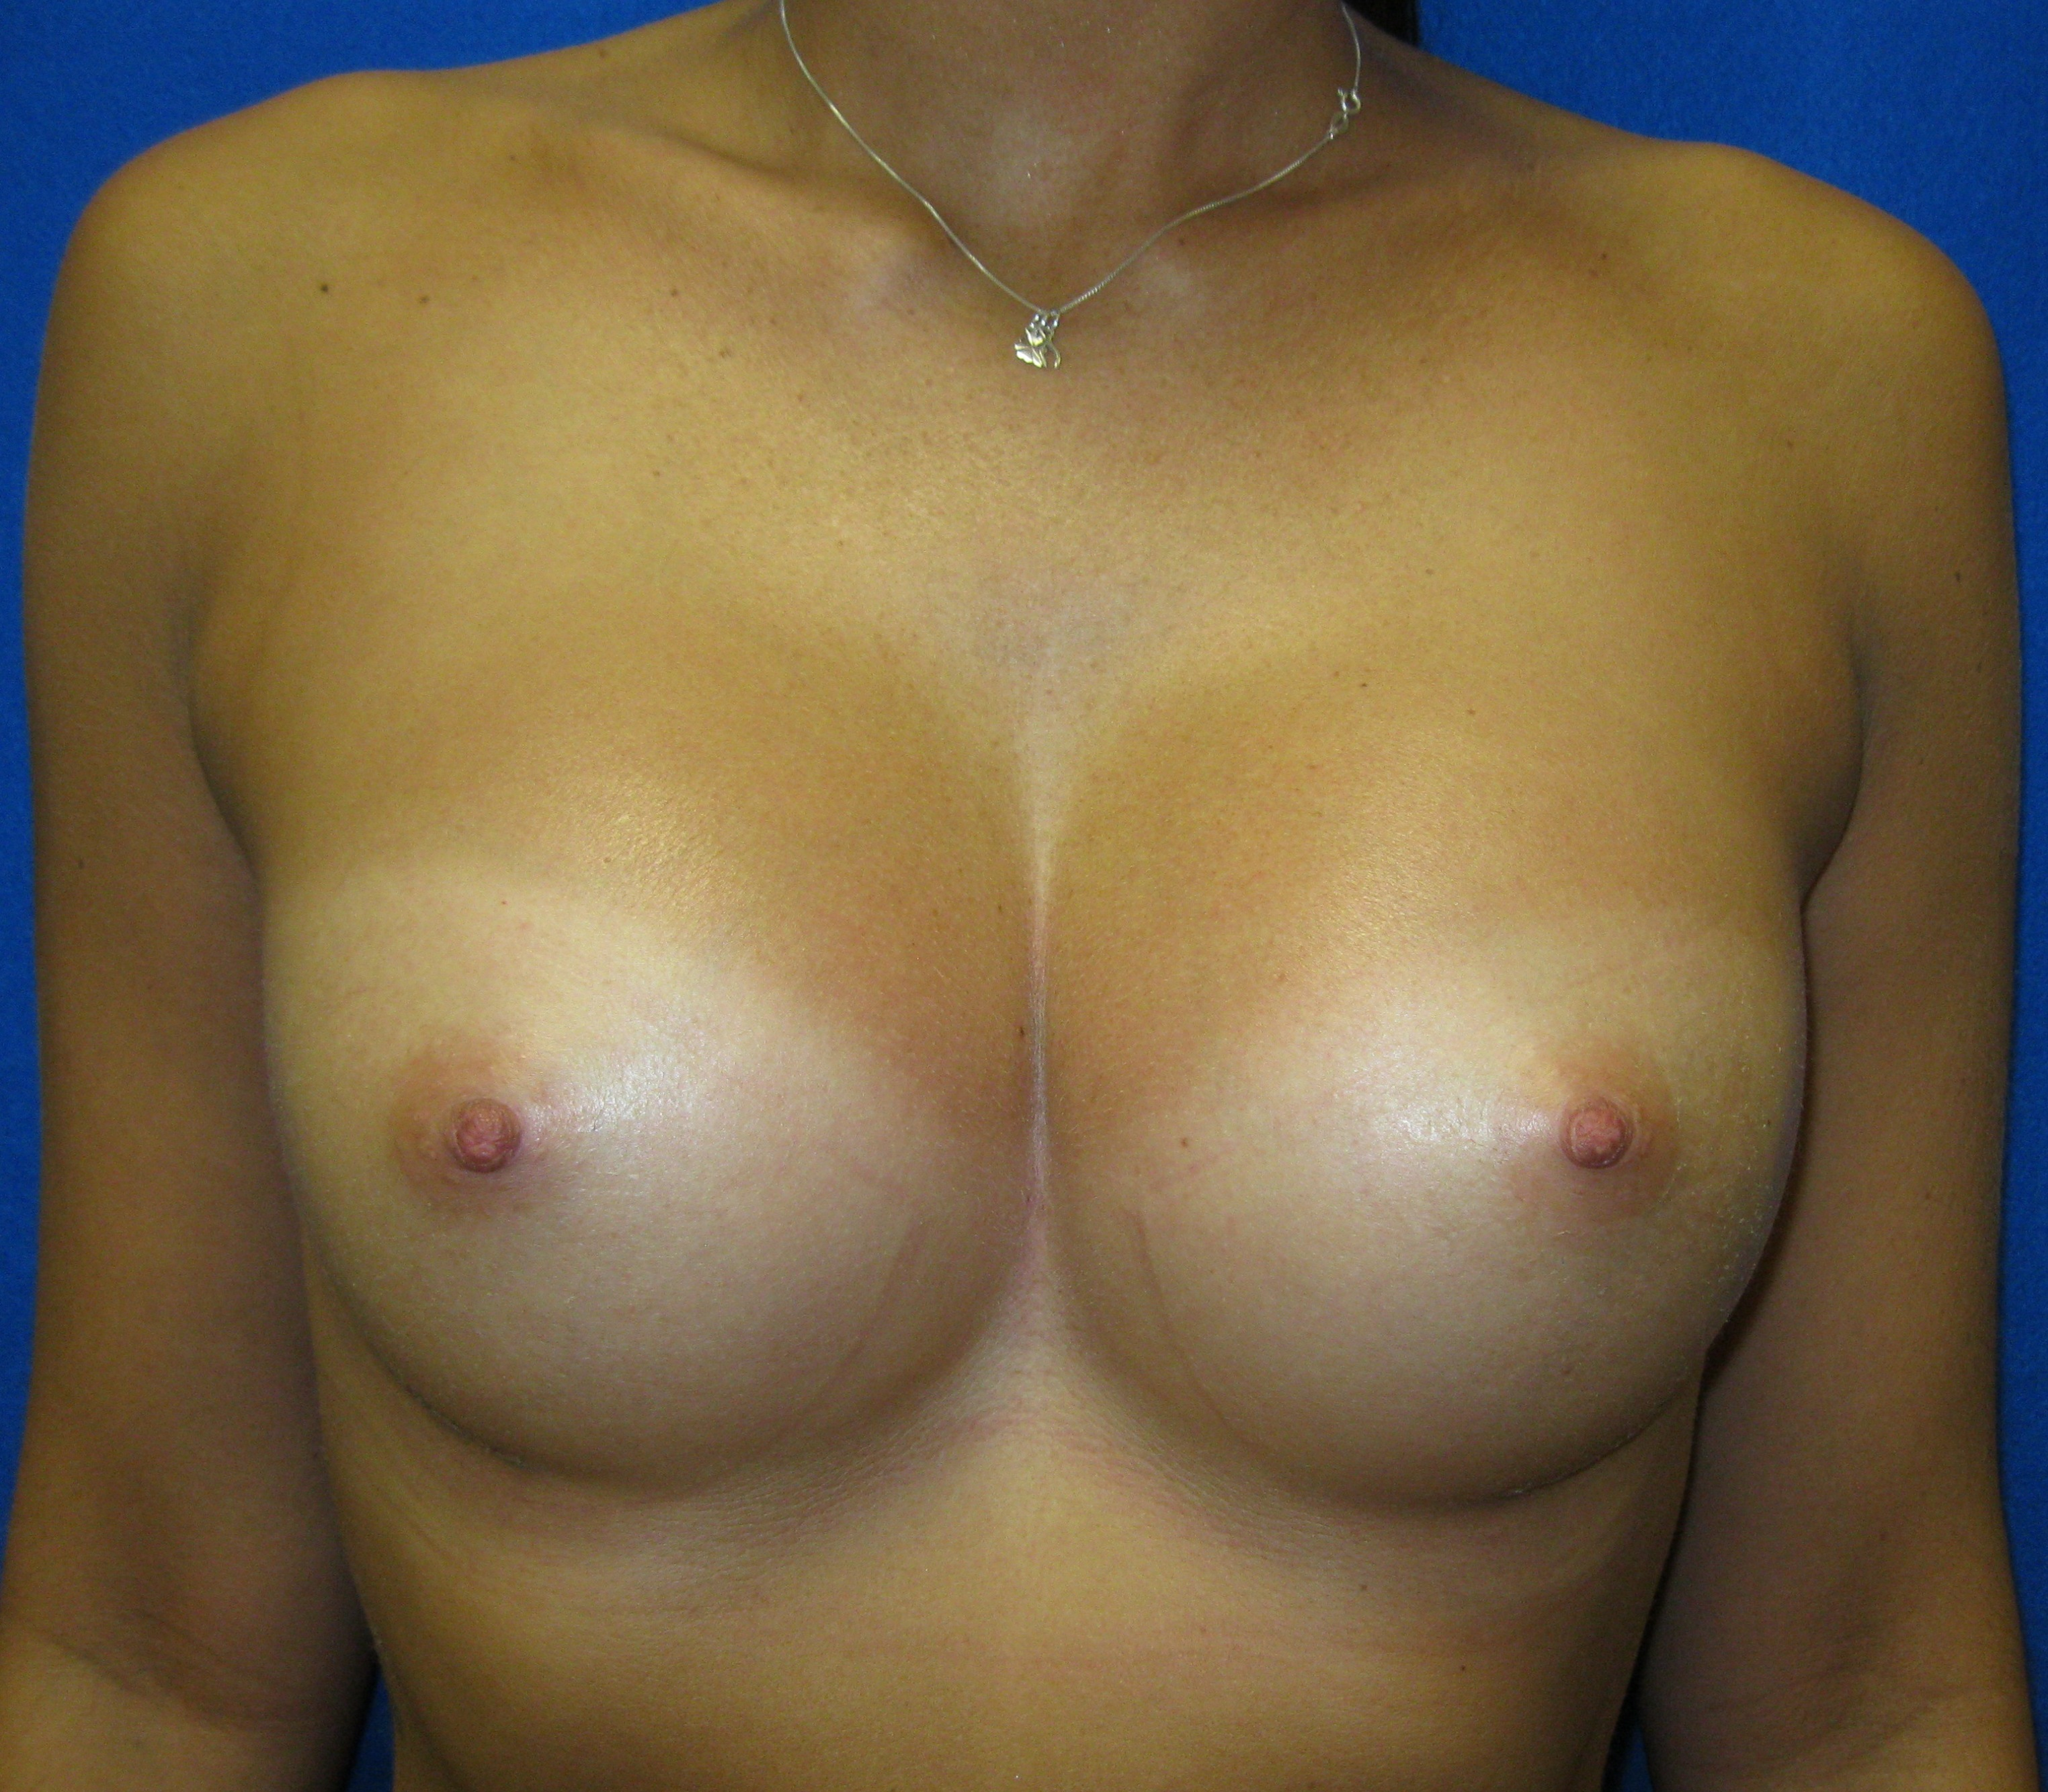 breast augmentation silicone implants fairfield bridgeport trumbull connecticut jandali plastic surgery